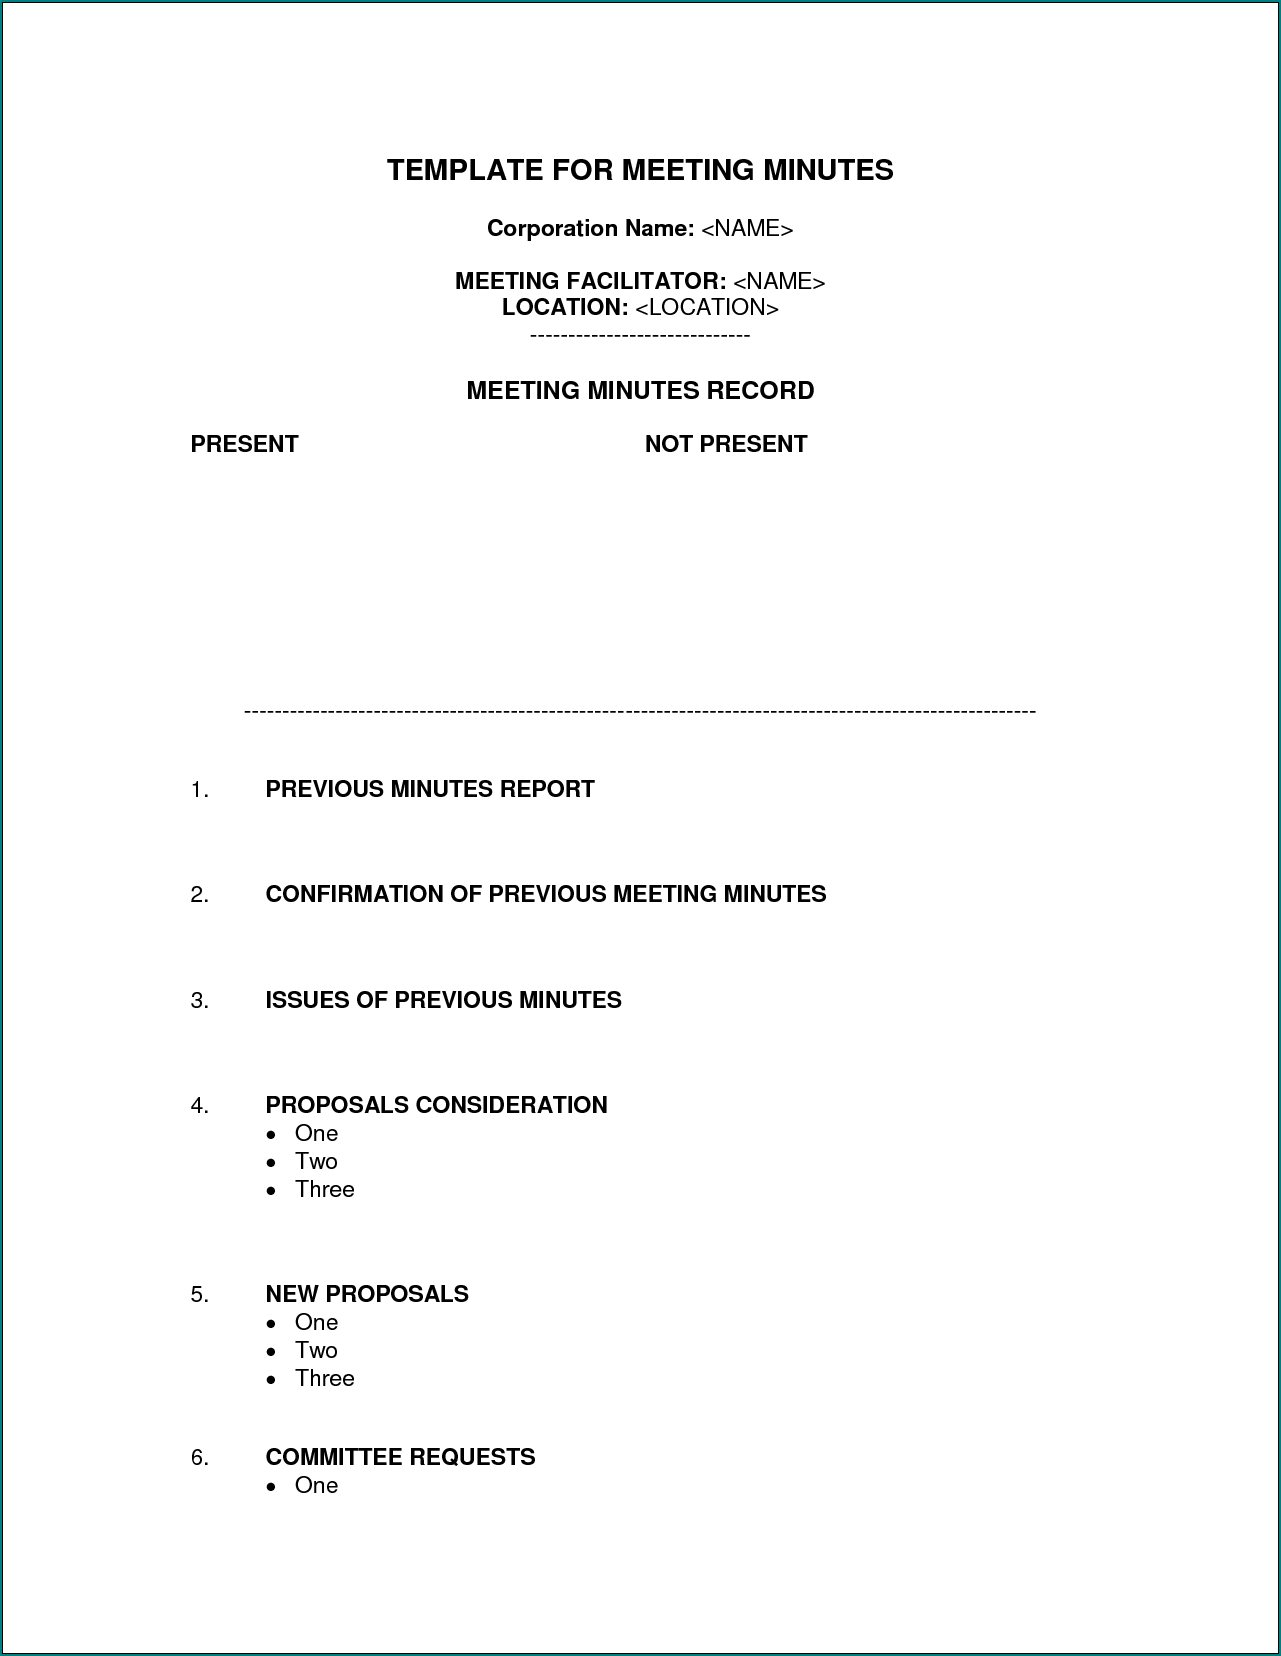 Example of Corporate Meeting Minutes Template Word